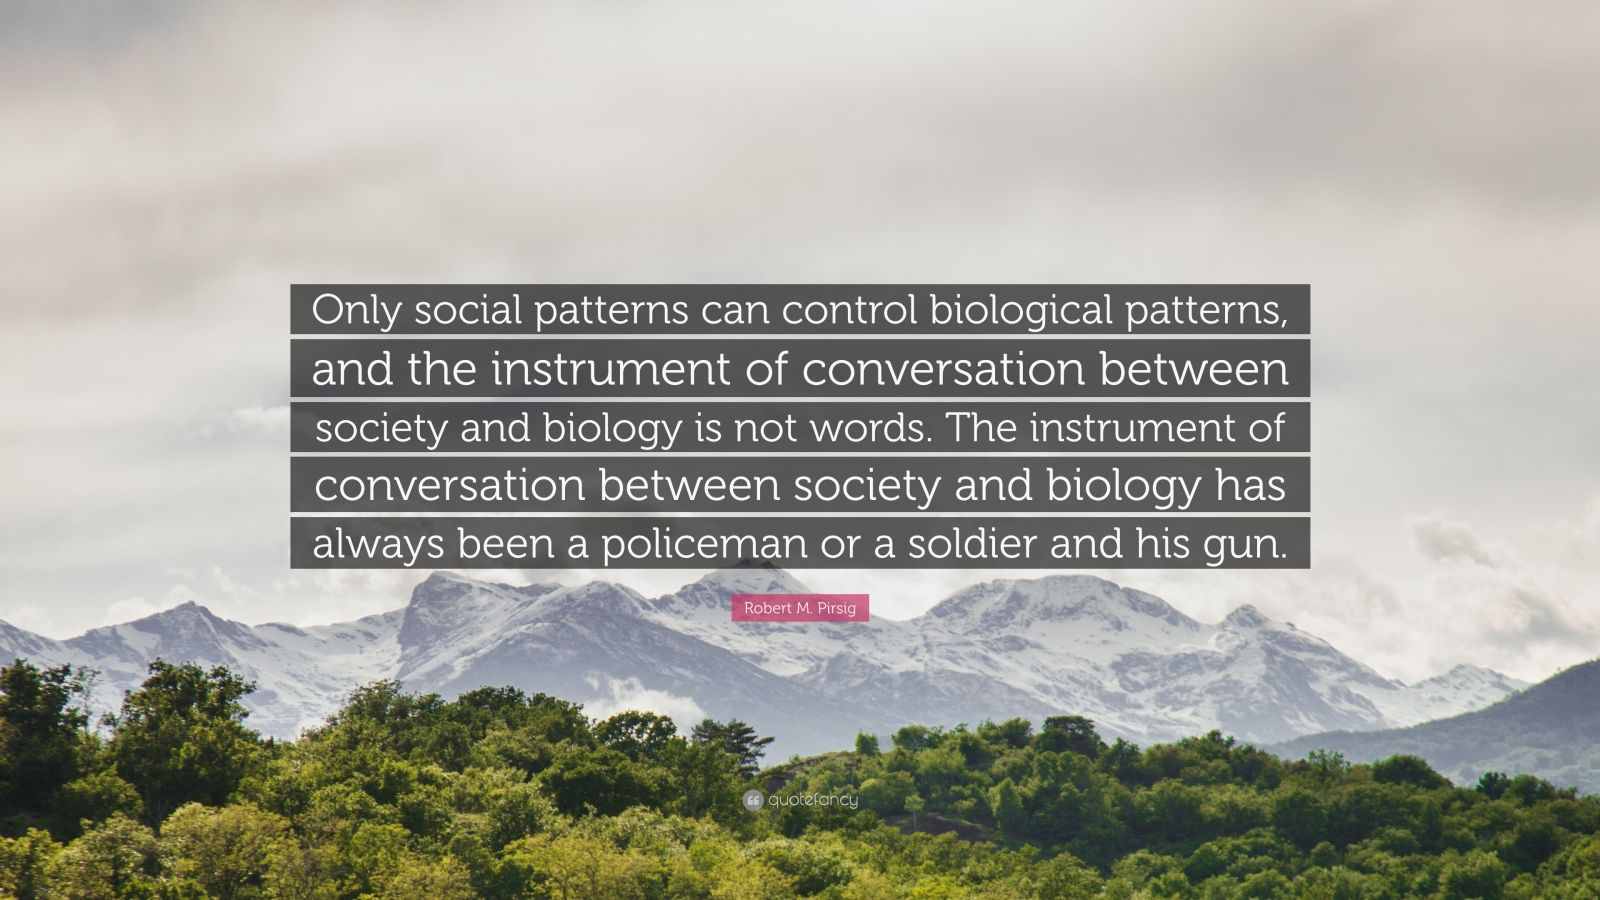 """Robert M. Pirsig Quote: """"Only social patterns can control biological patterns, and the instrument of conversation between society and biology is not words. The instrument of conversation between society and biology has always been a policeman or a soldier and his gun."""""""